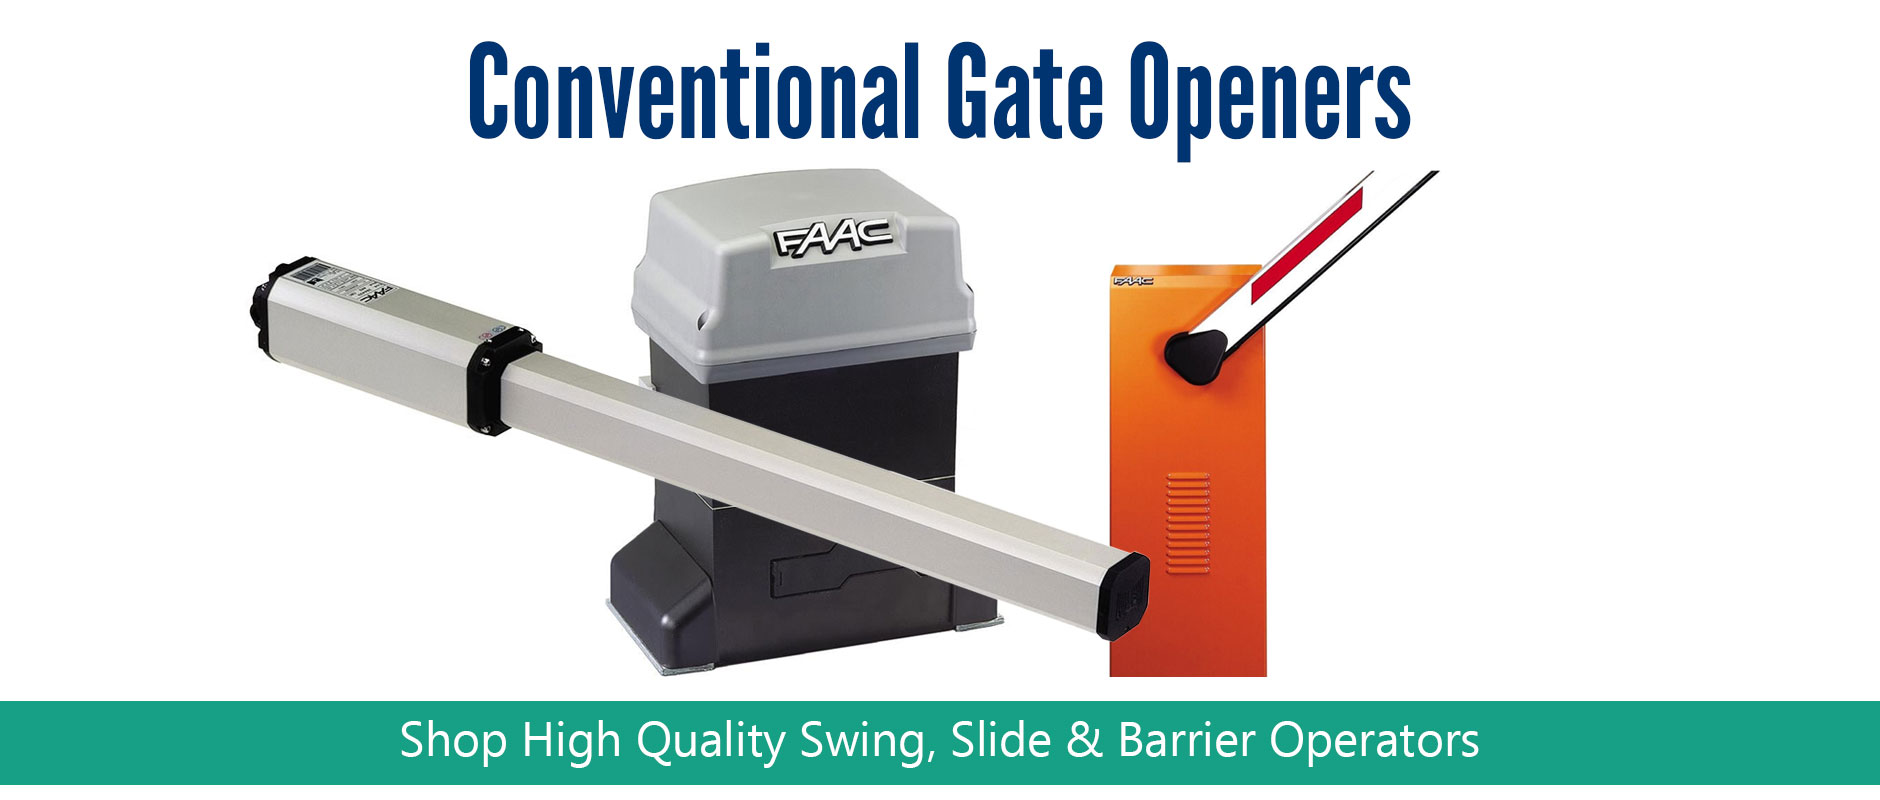 FAAC Conventional Gate Openers